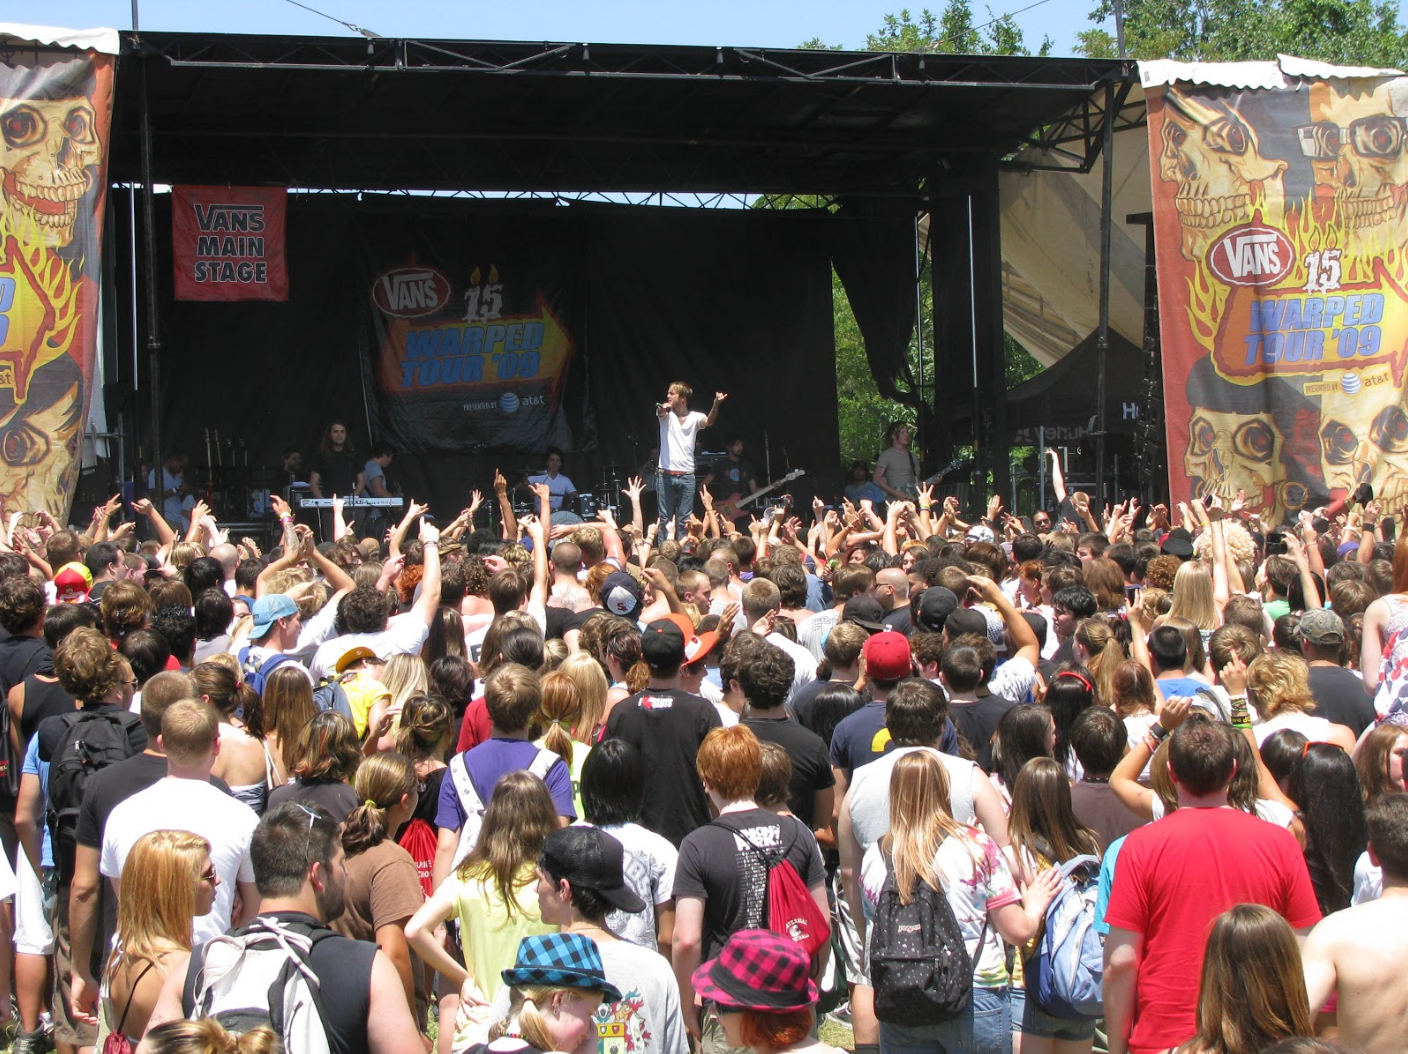 Warped crowd 2009